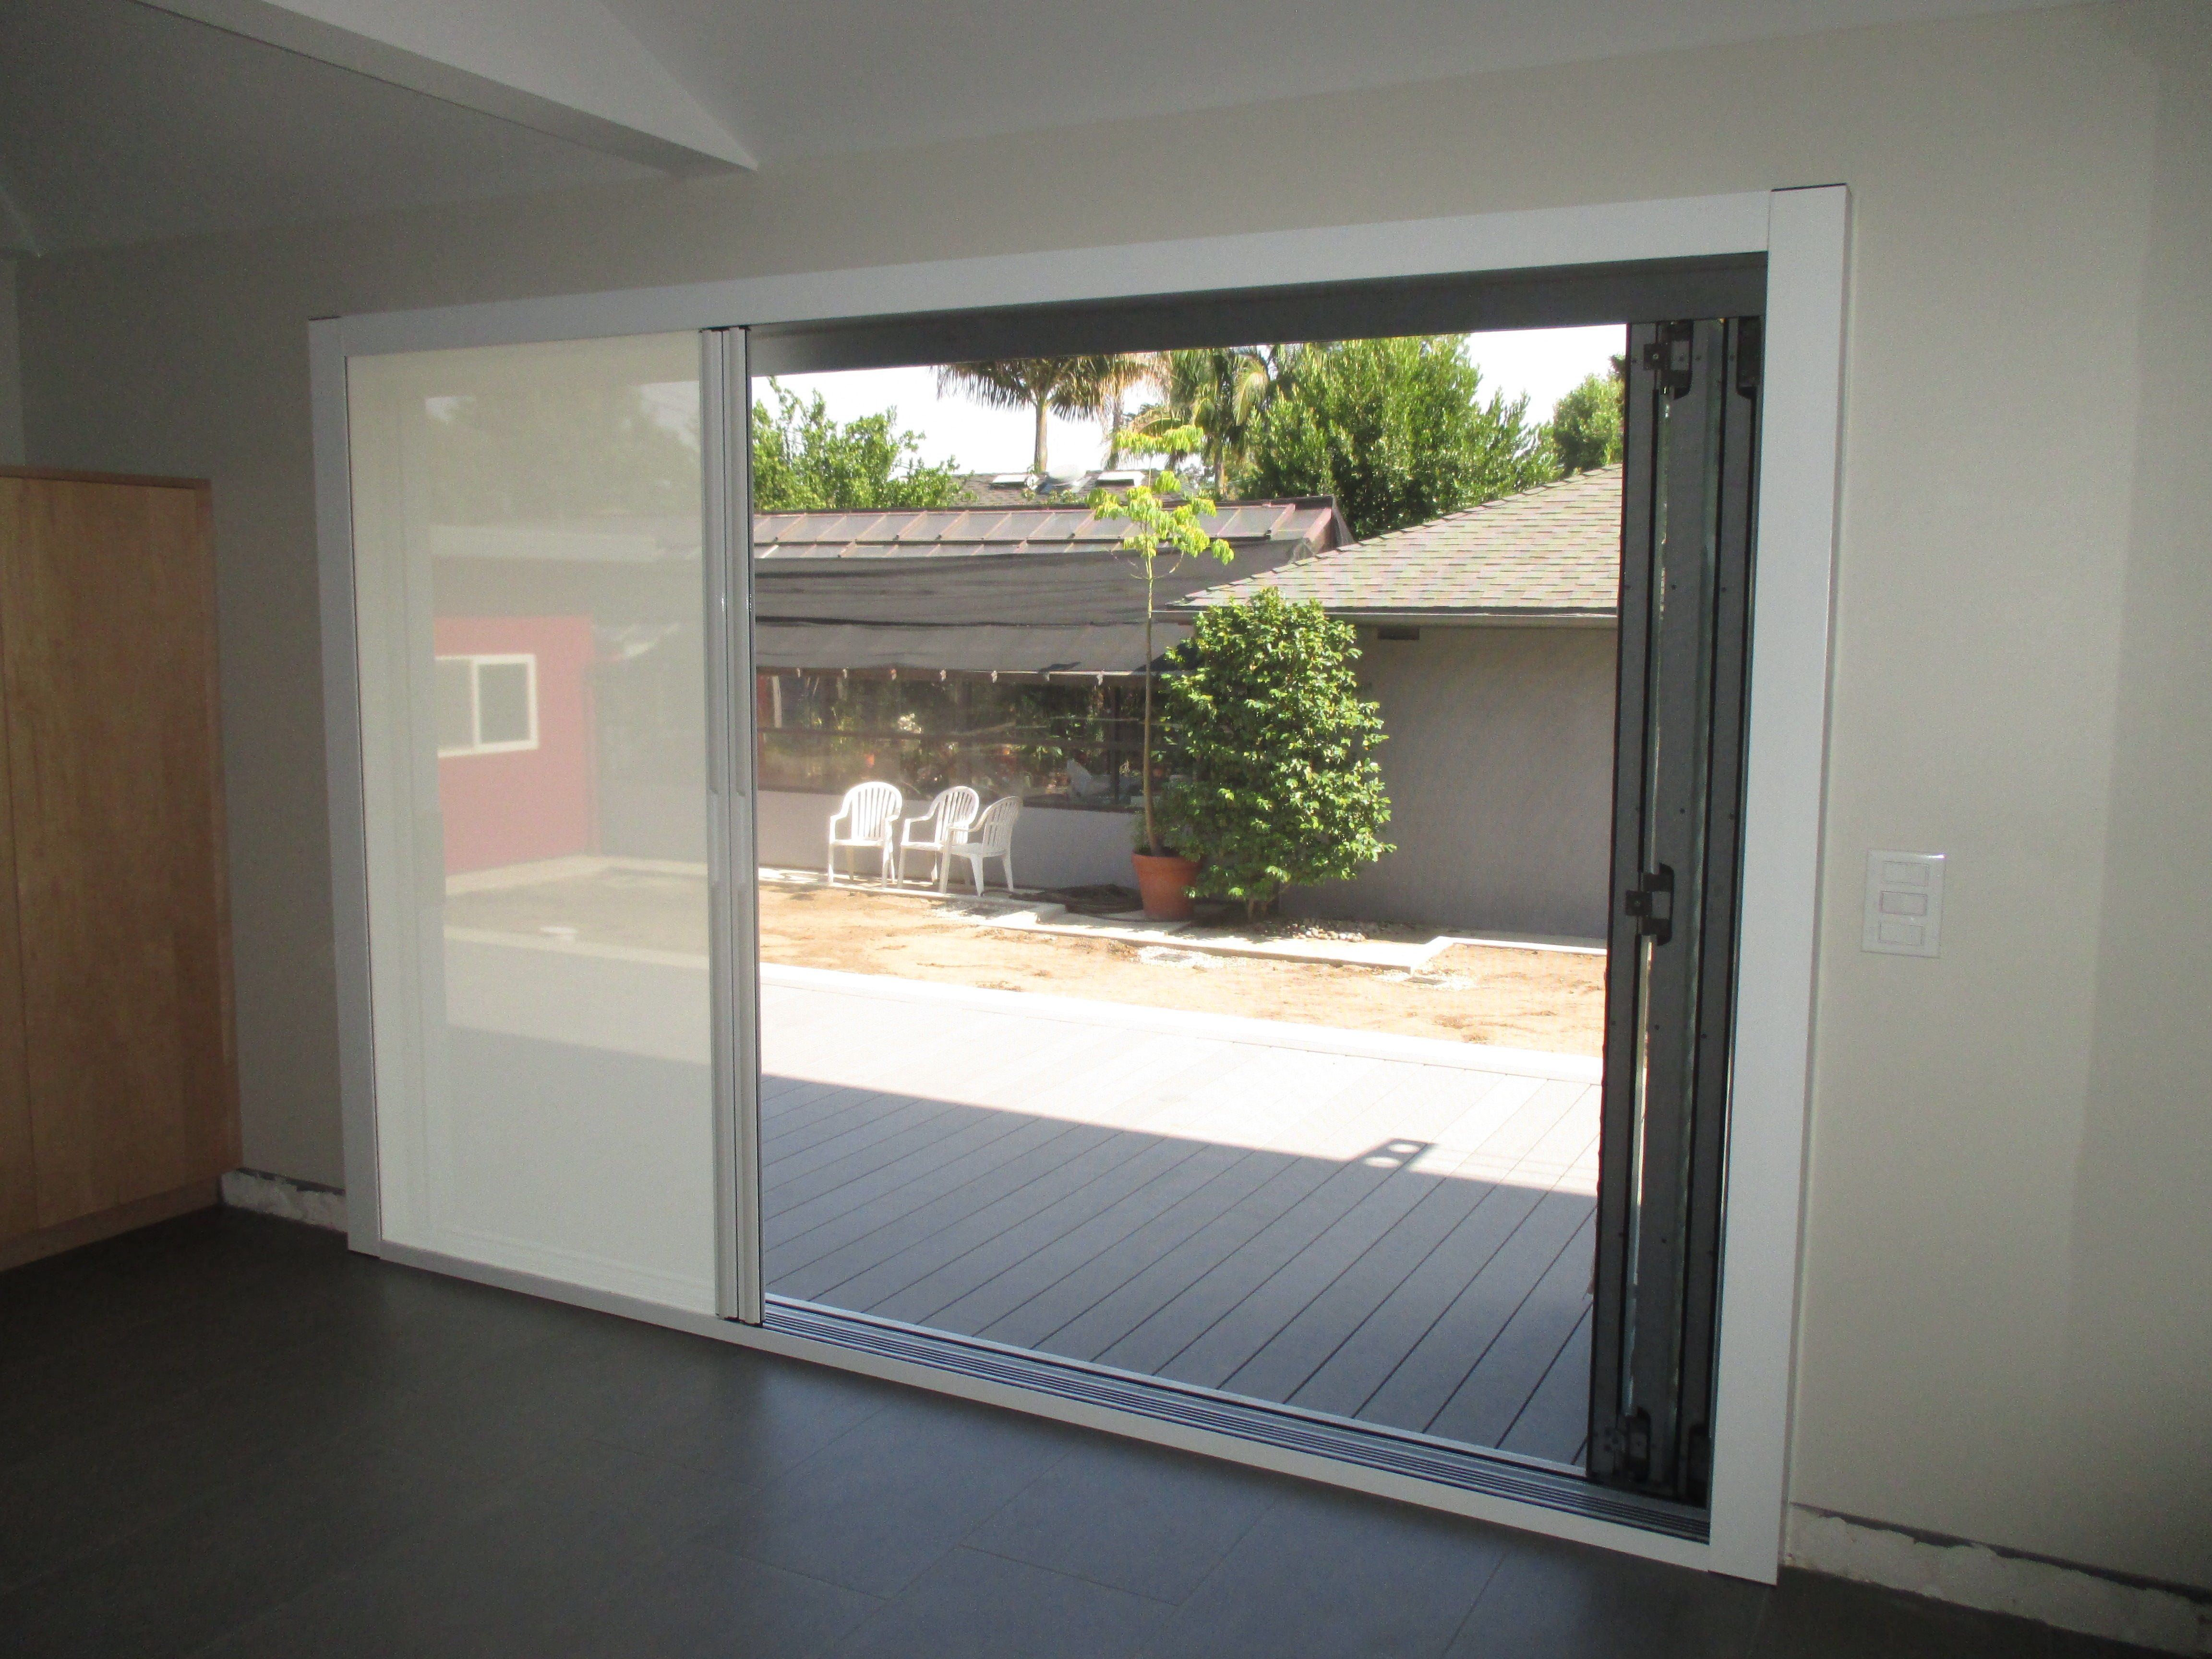 Our team did a unique installation of a double door Centor Screen with Black Super Screen & Our team did a unique installation of a double door Centor Screen ...